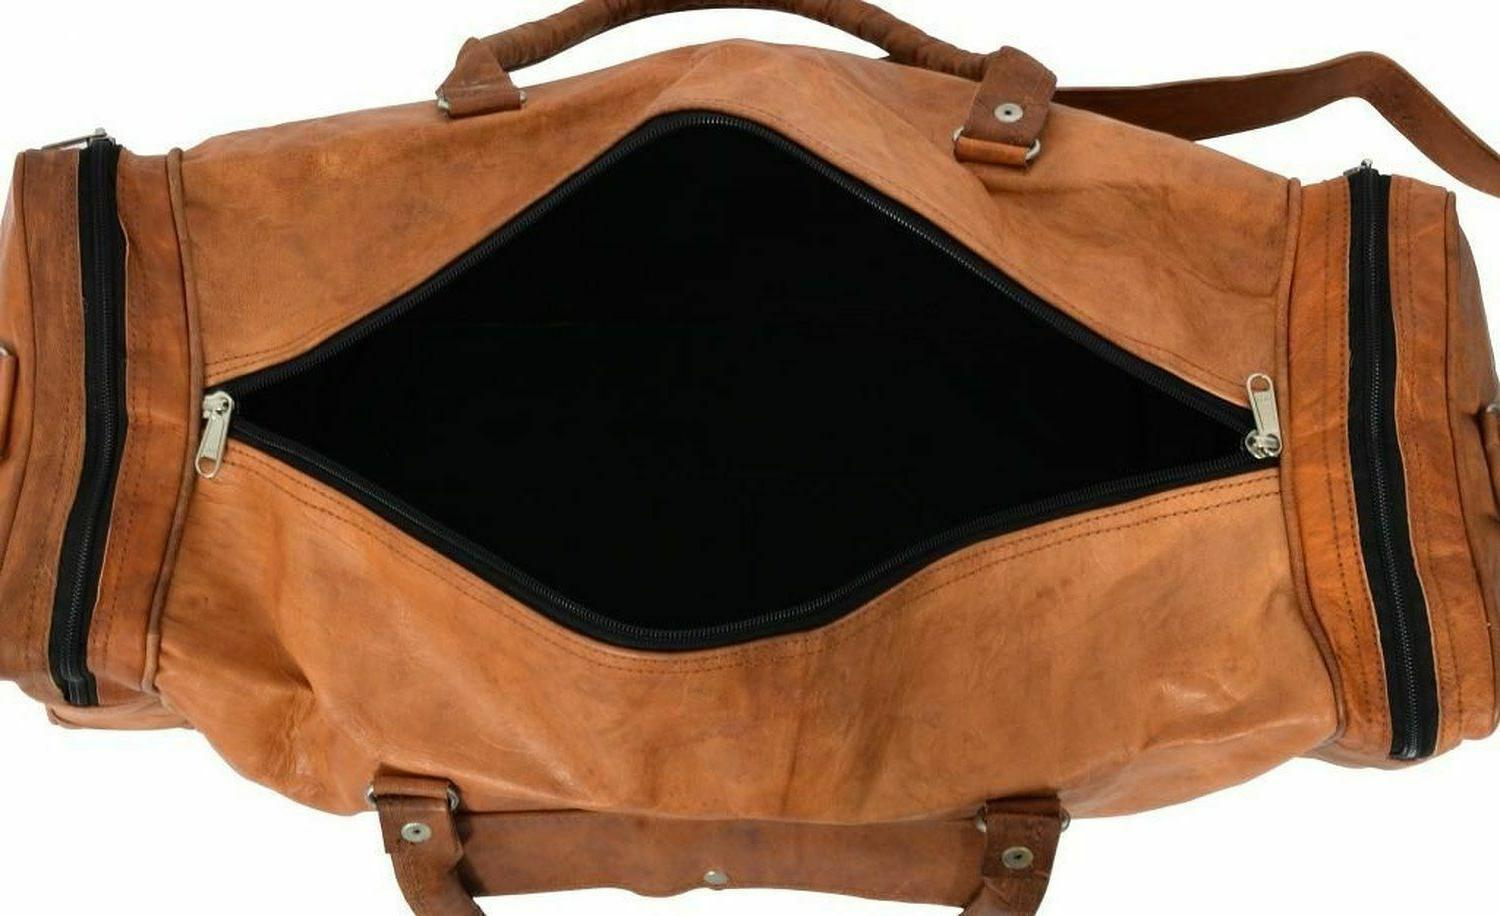 Bag Luggage Gym Brown